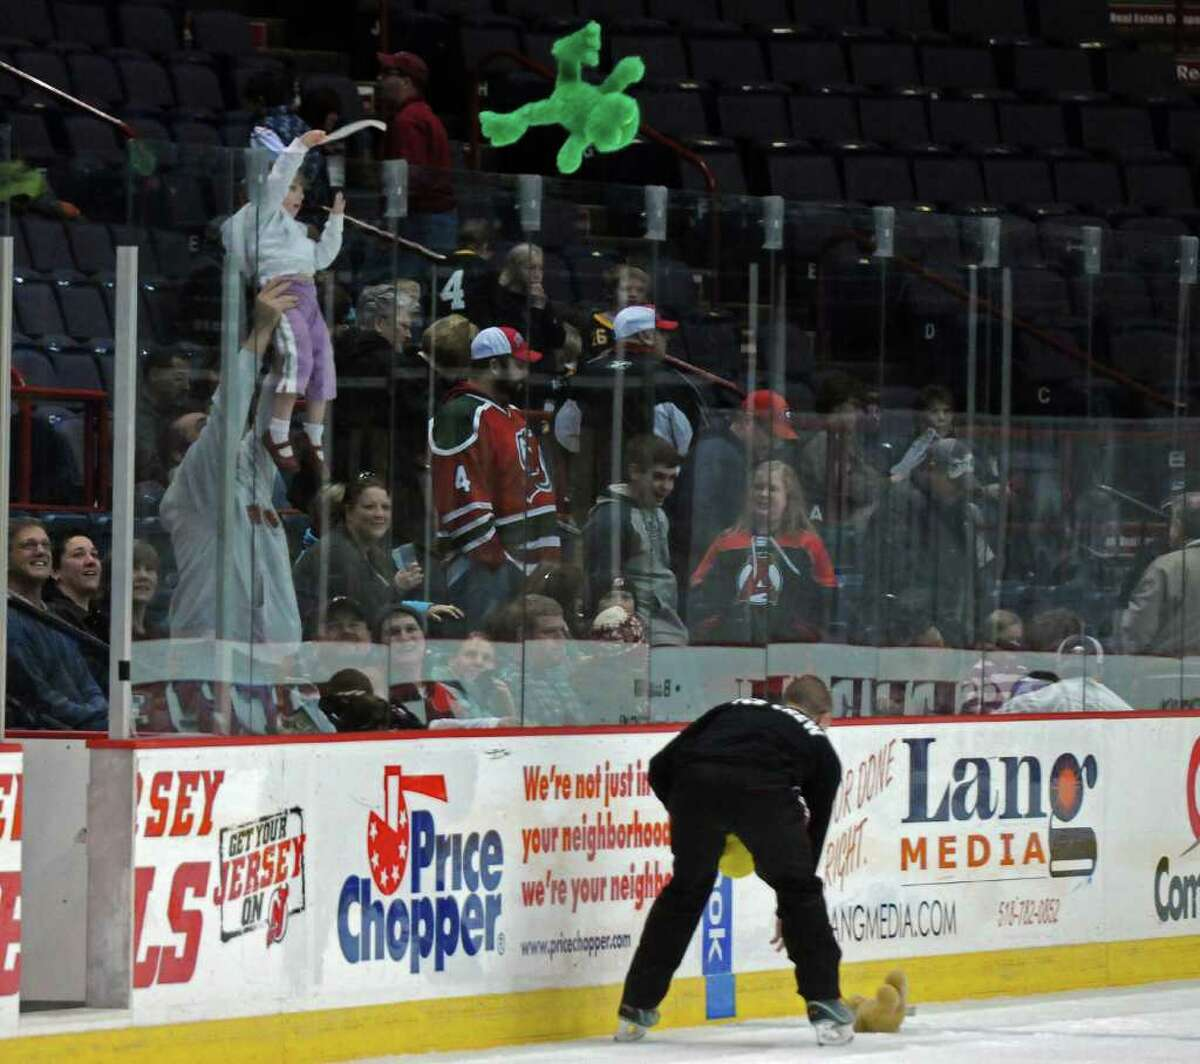 Albany Devils staff collect donated teddy bears from the ice during a